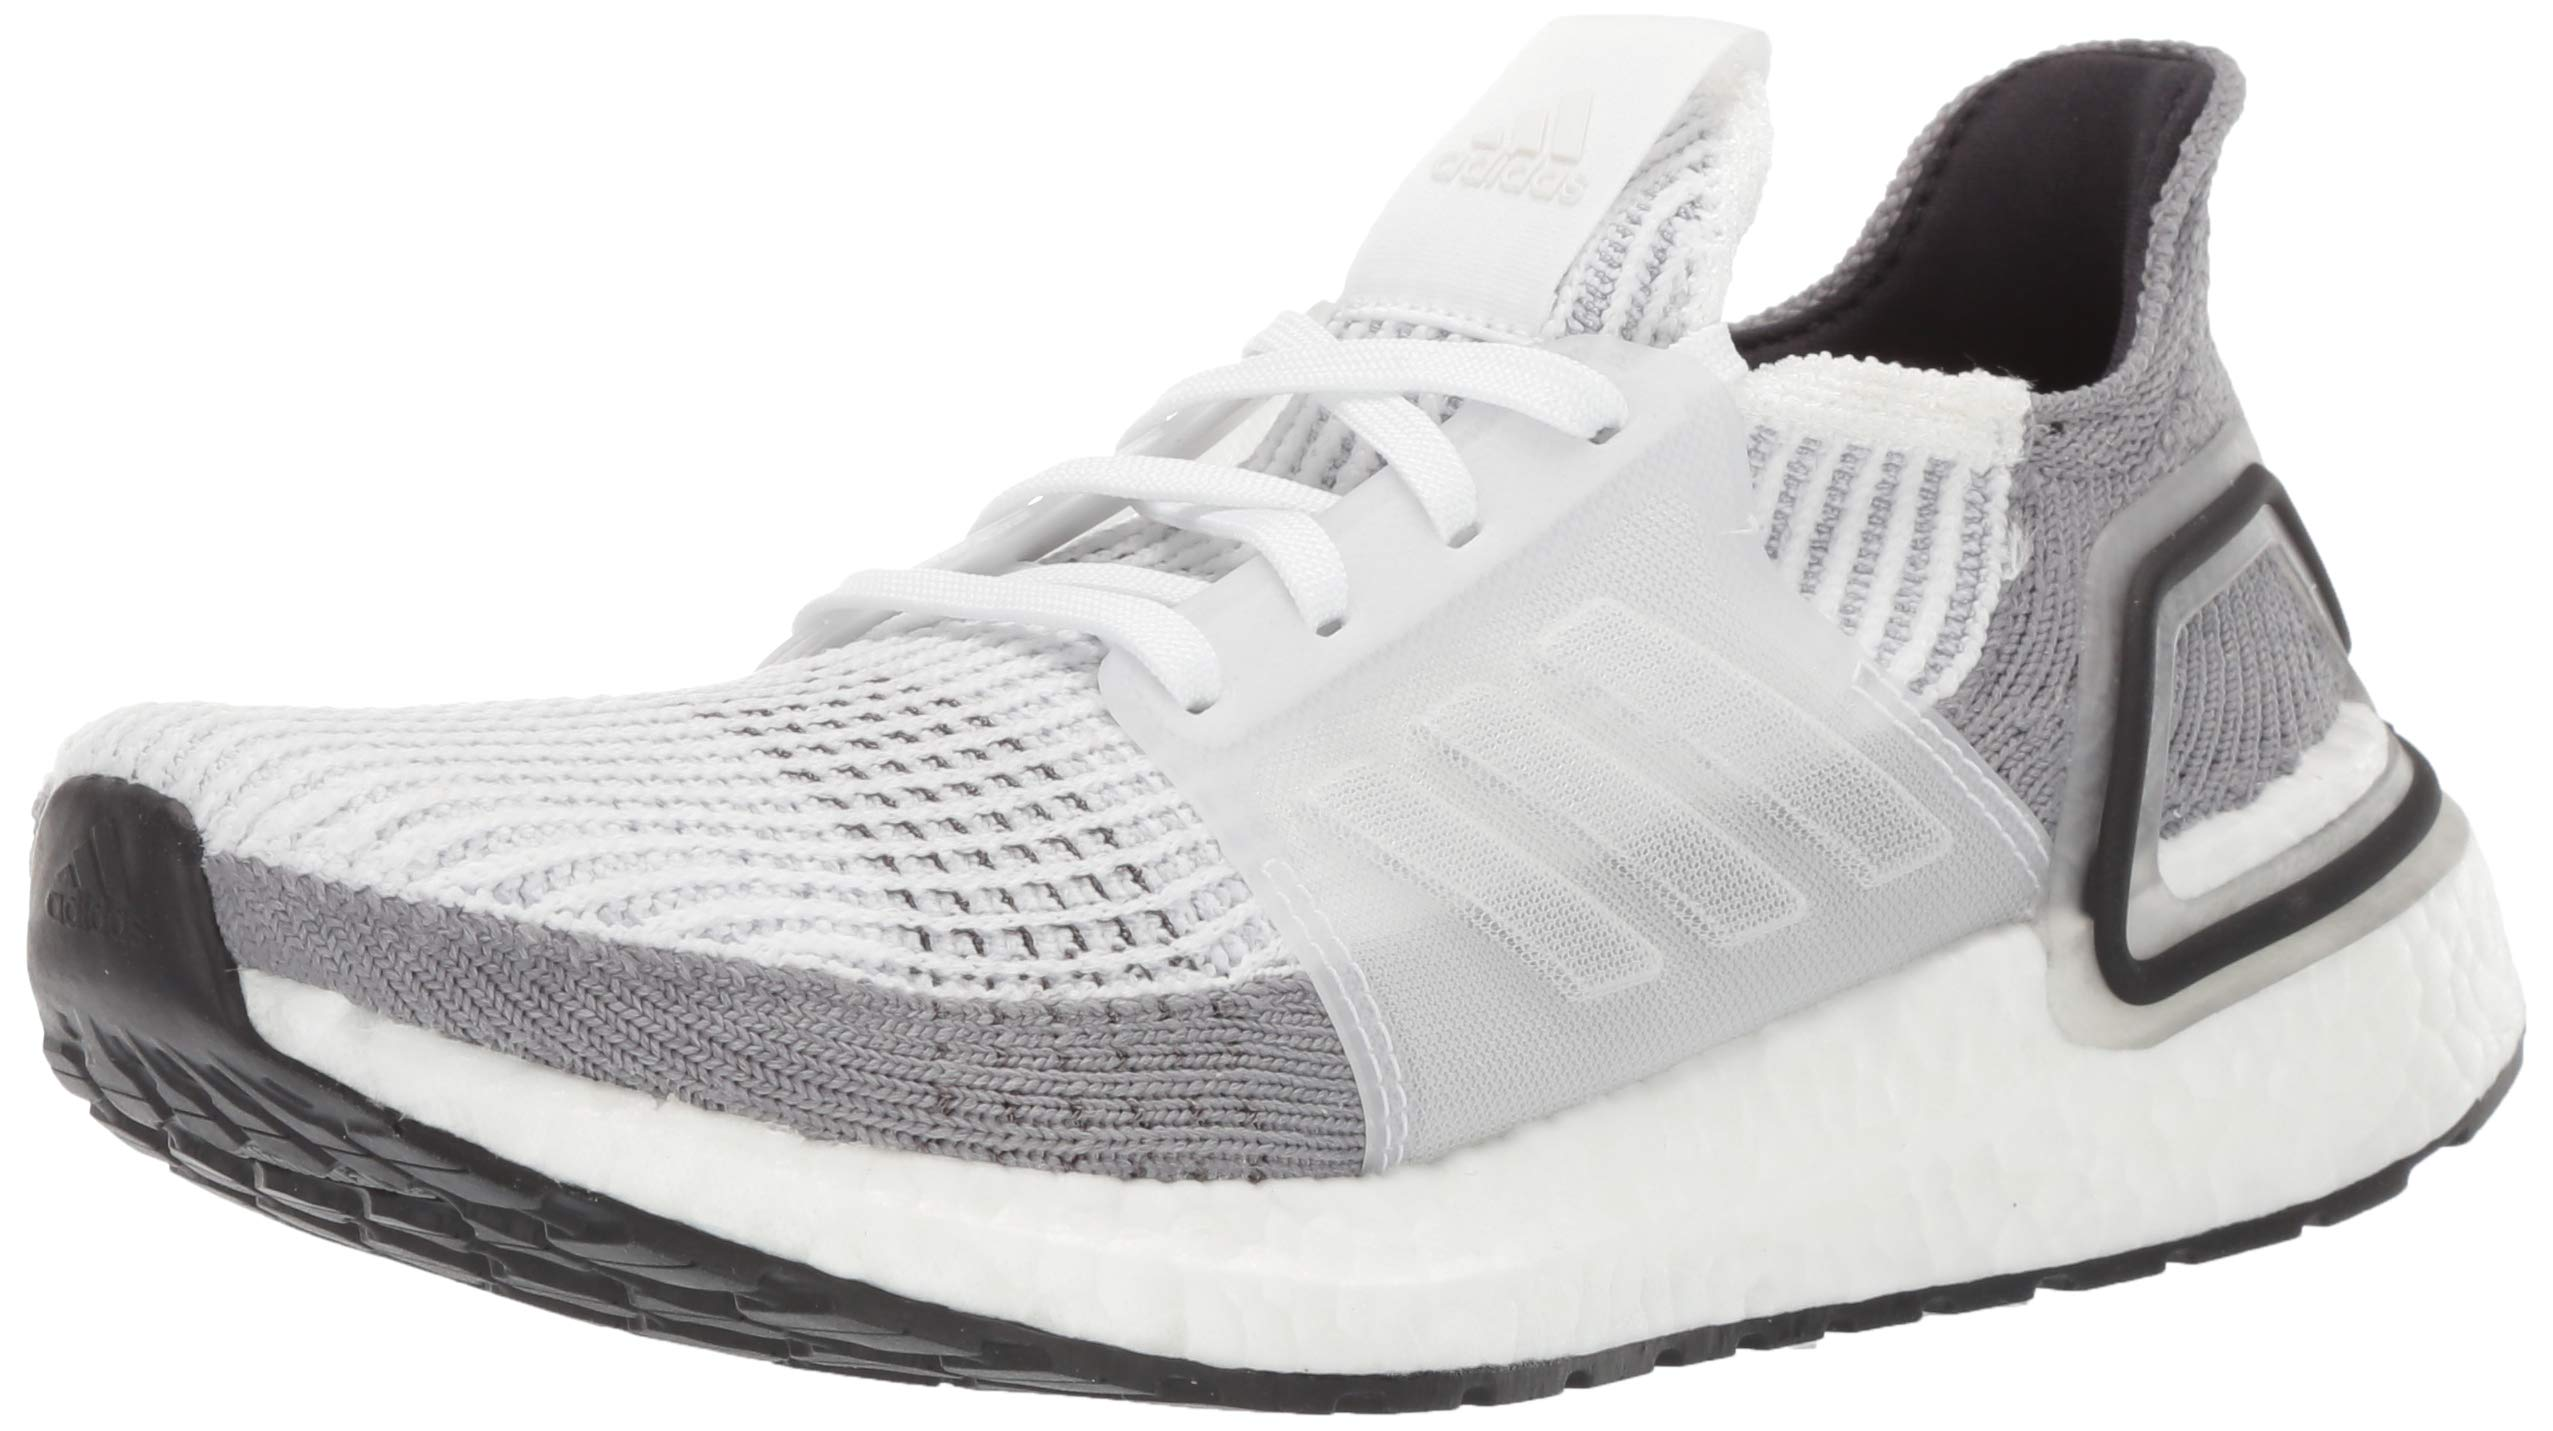 adidas Women's Ultraboost 19 Crystal White/Grey, 7.5 M US